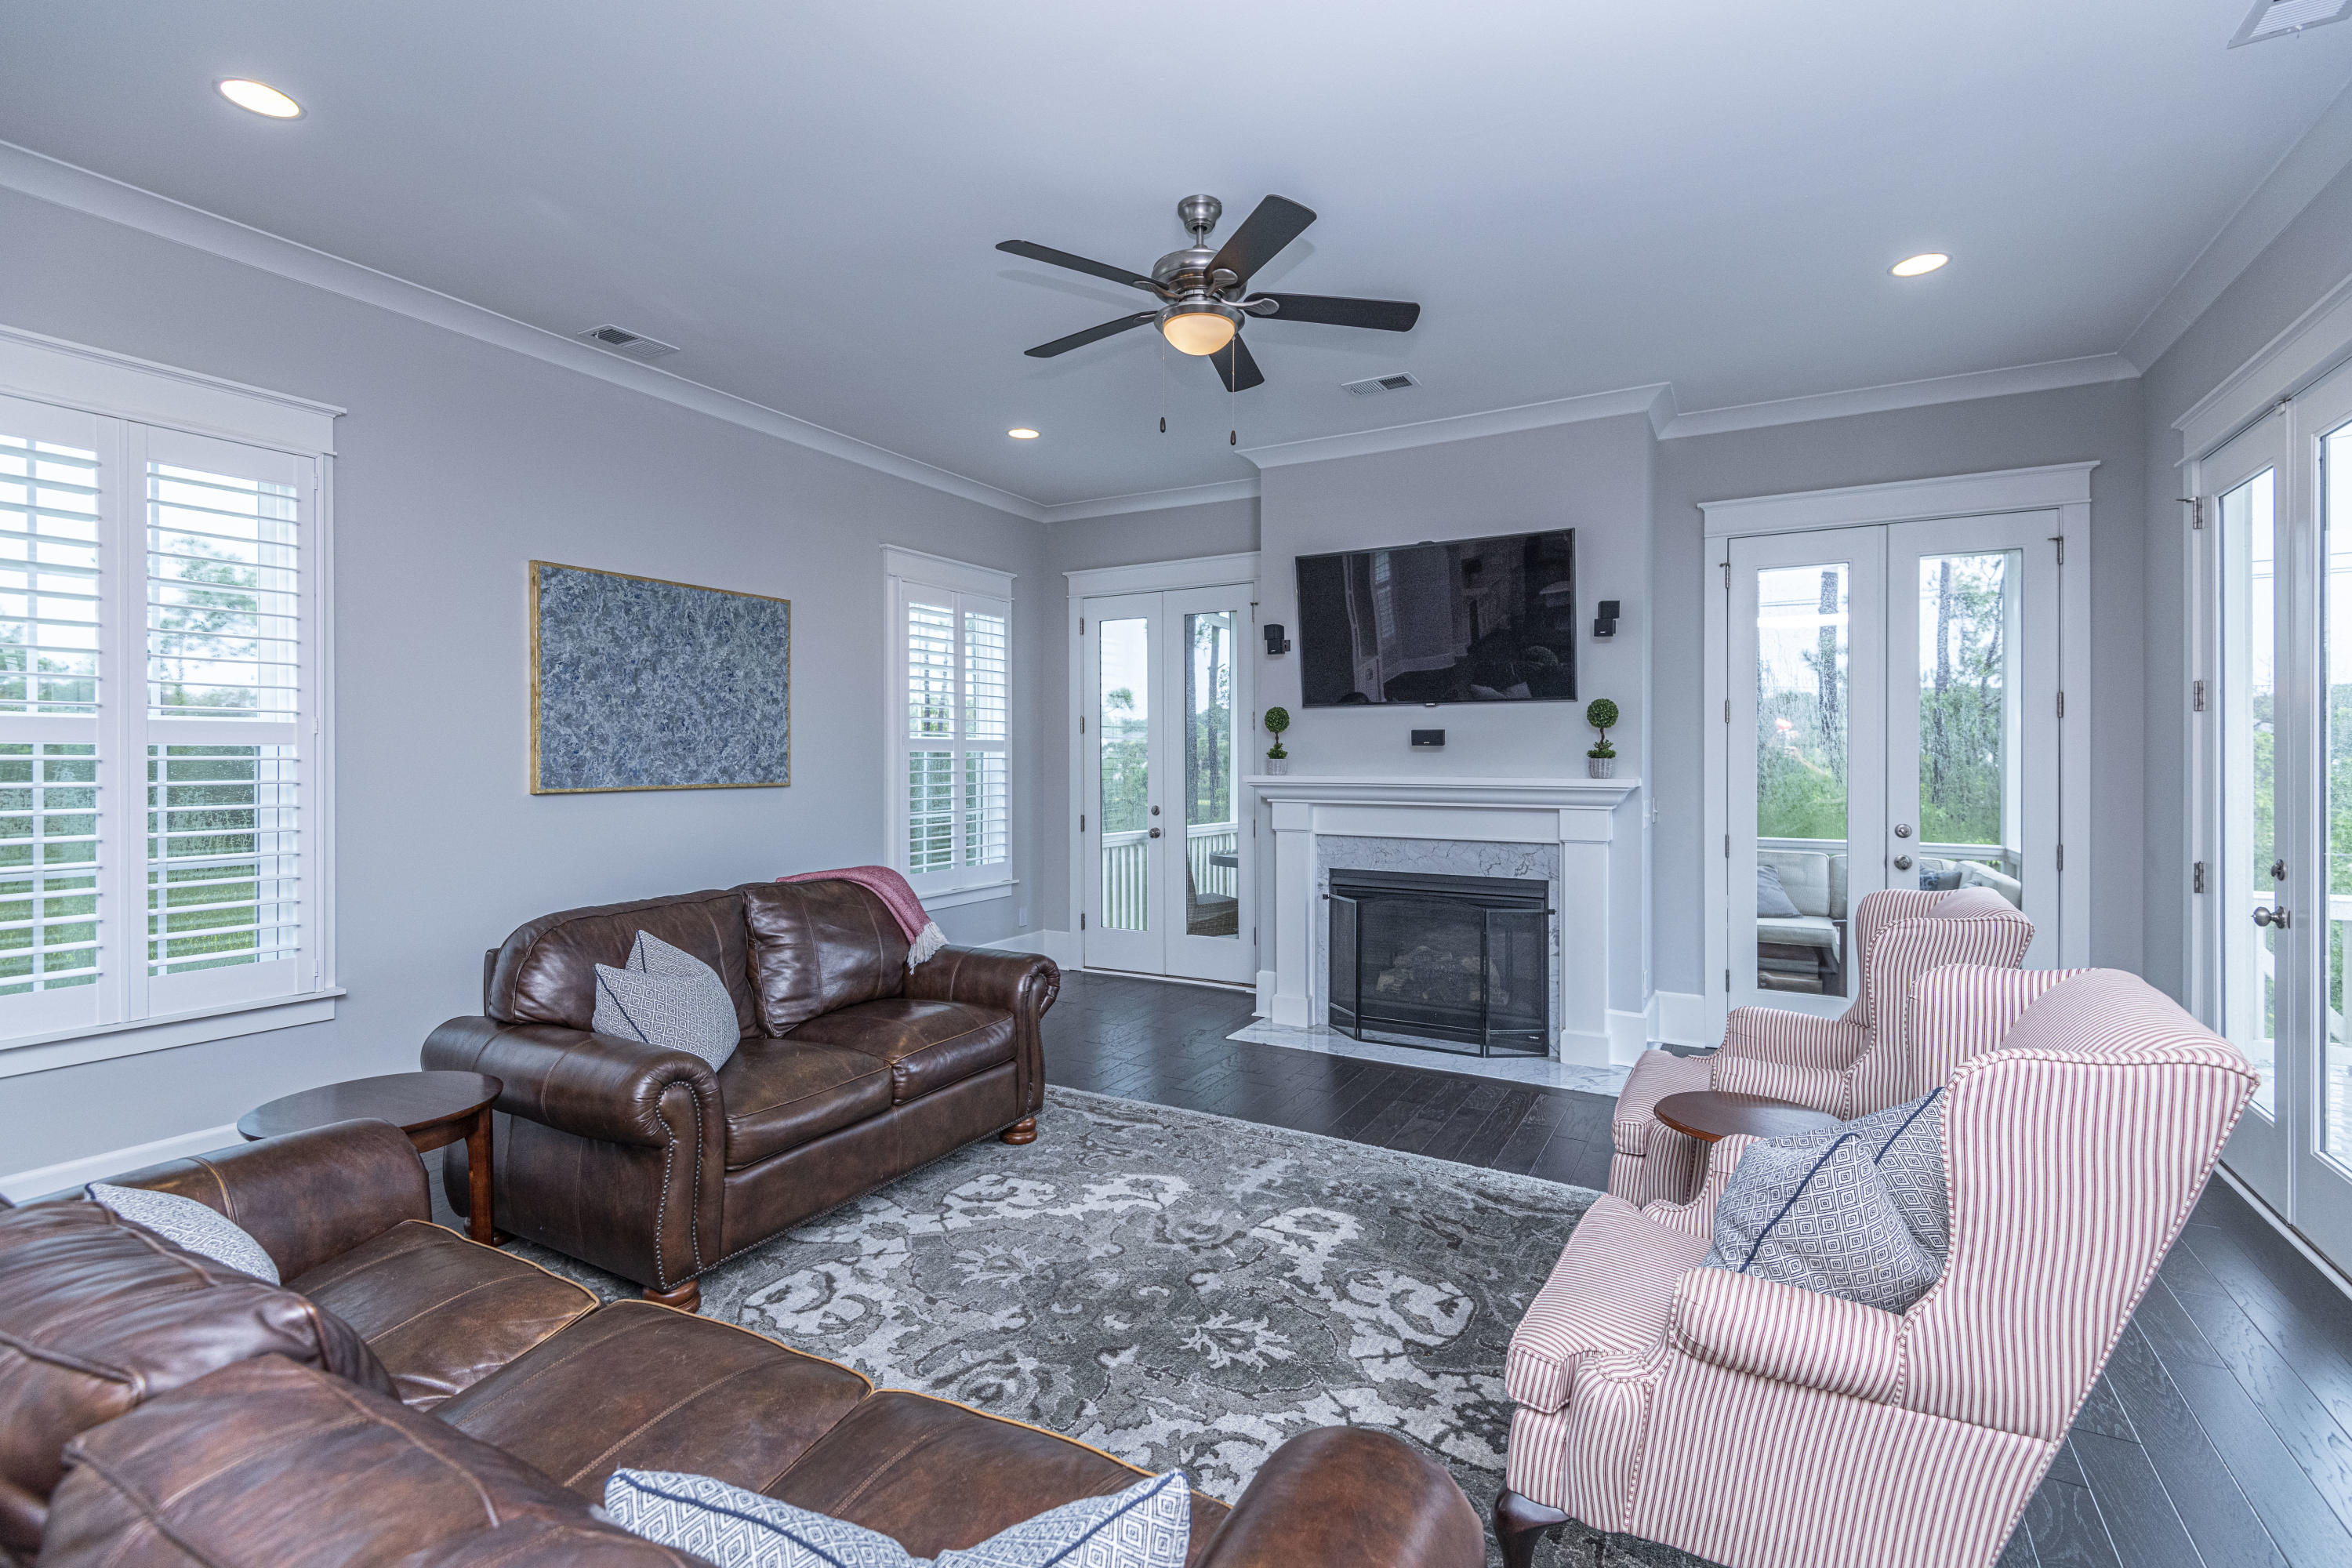 Stratton by the Sound Homes For Sale - 1204 Spottail, Mount Pleasant, SC - 31